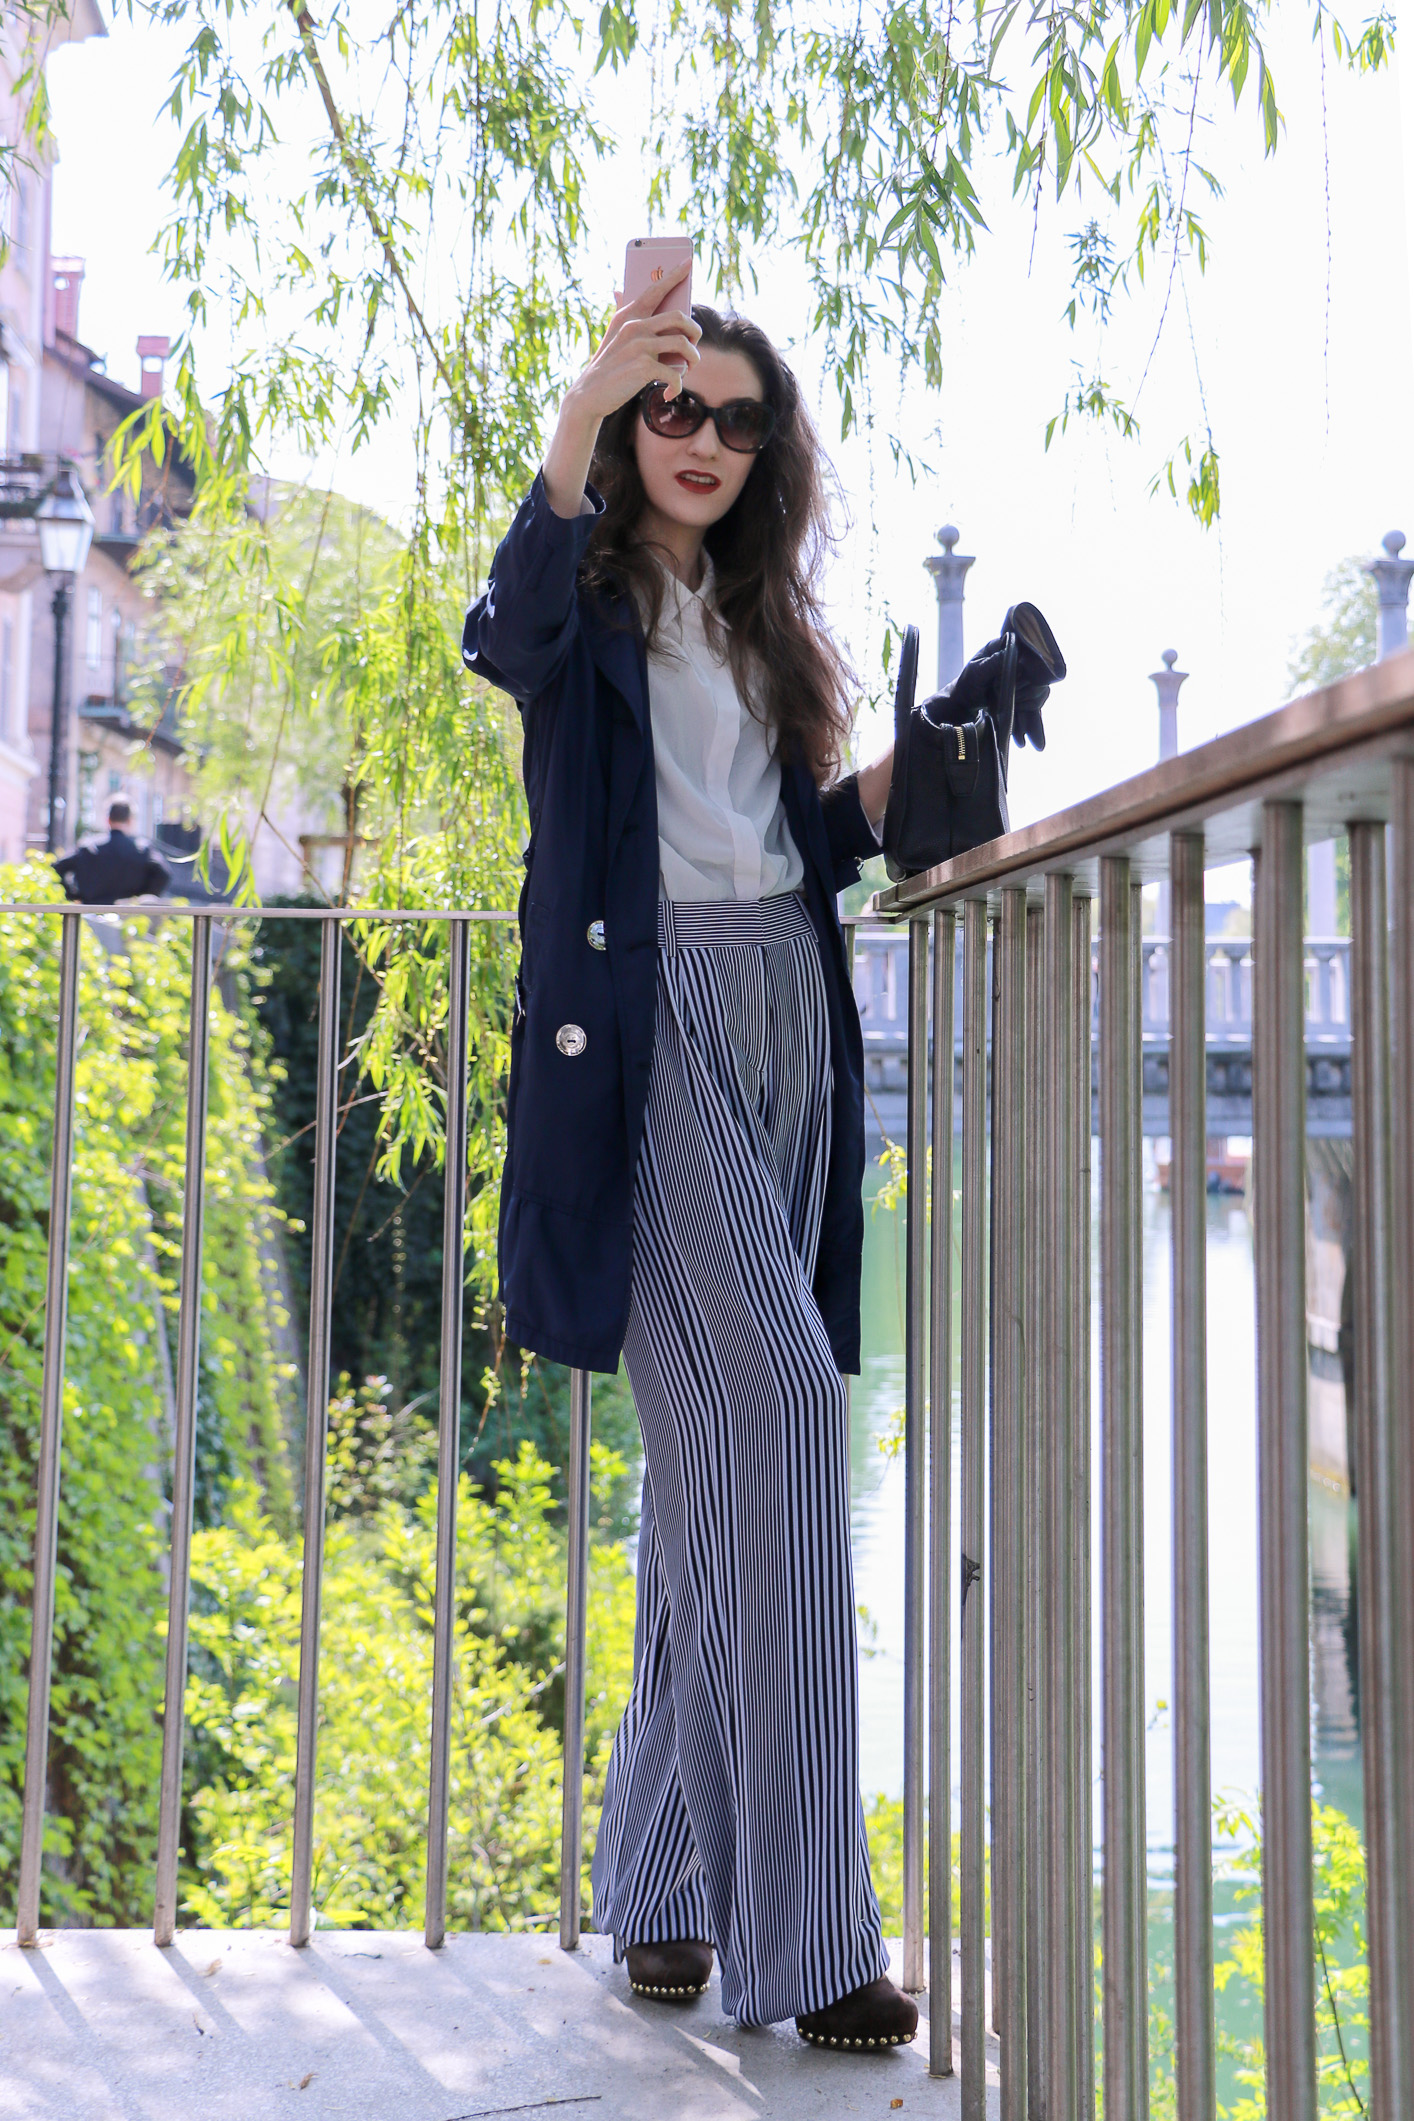 Fashion blogger Veronika Lipar of Brunette From Wall Street sharing how to wear wide-leg striped trousers for a chic style this spring